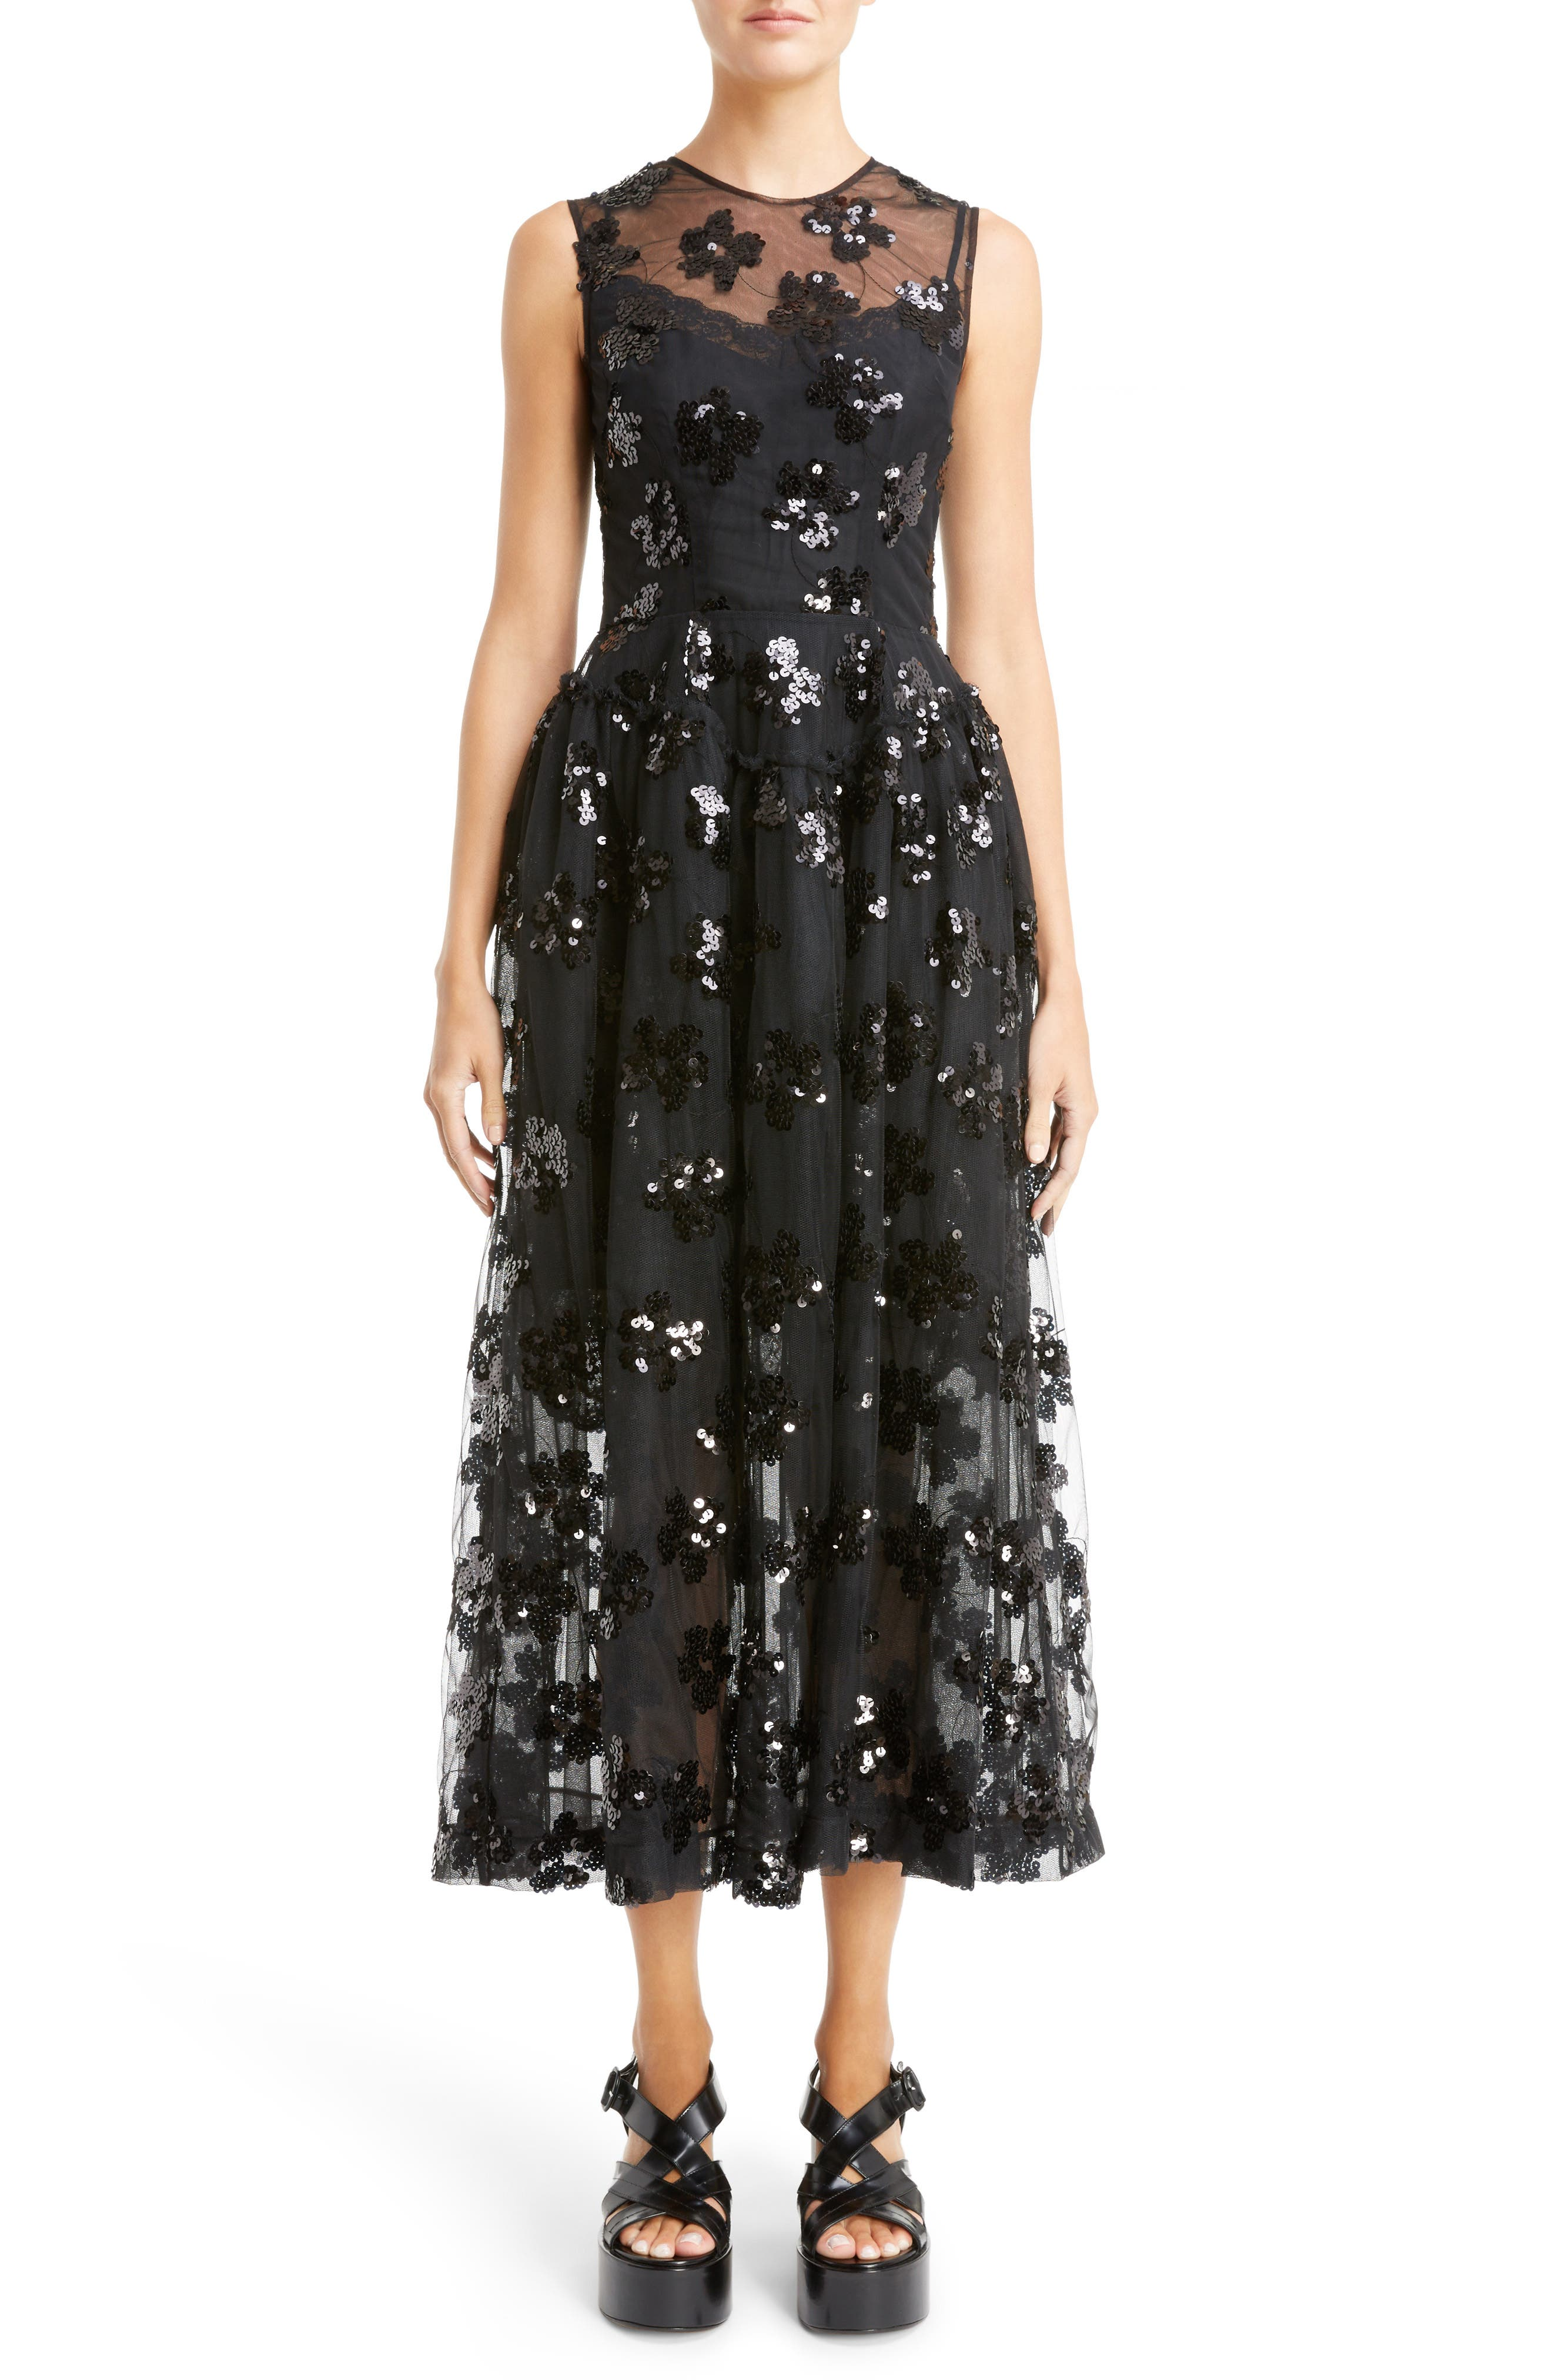 Simone Rocha Sequin Tulle Midi Dress